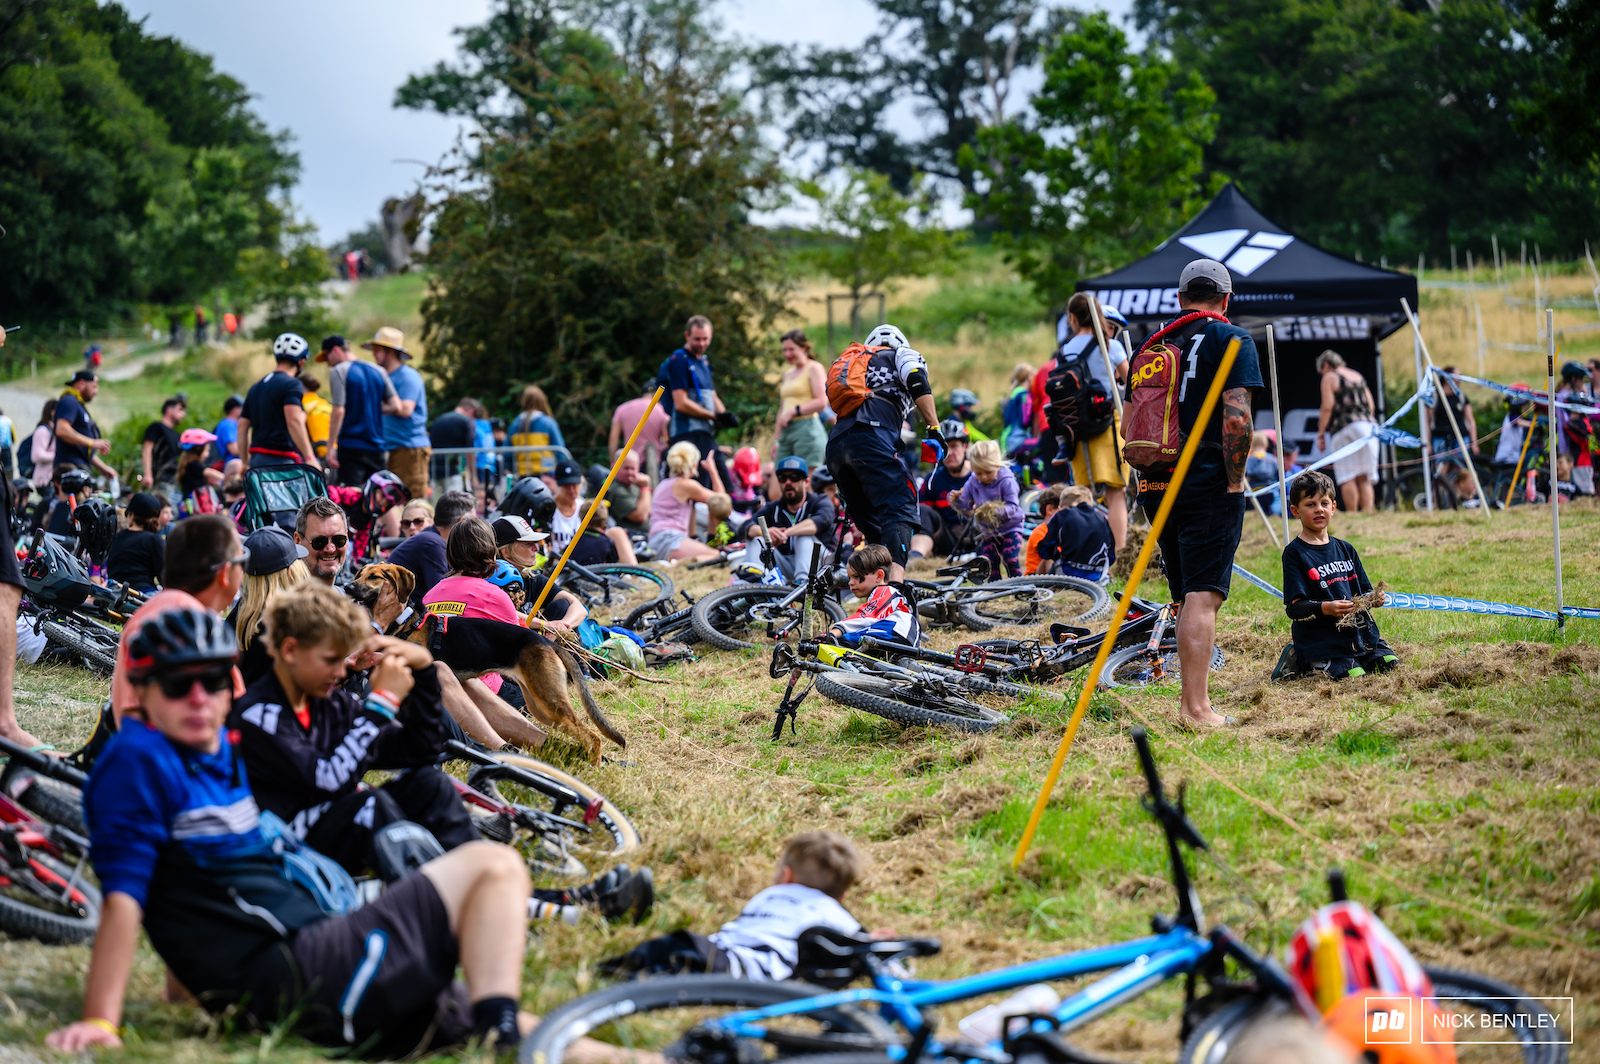 It s been so good to see all the kids racing and families at the event enjoying themselves The future of UK MTB look bright